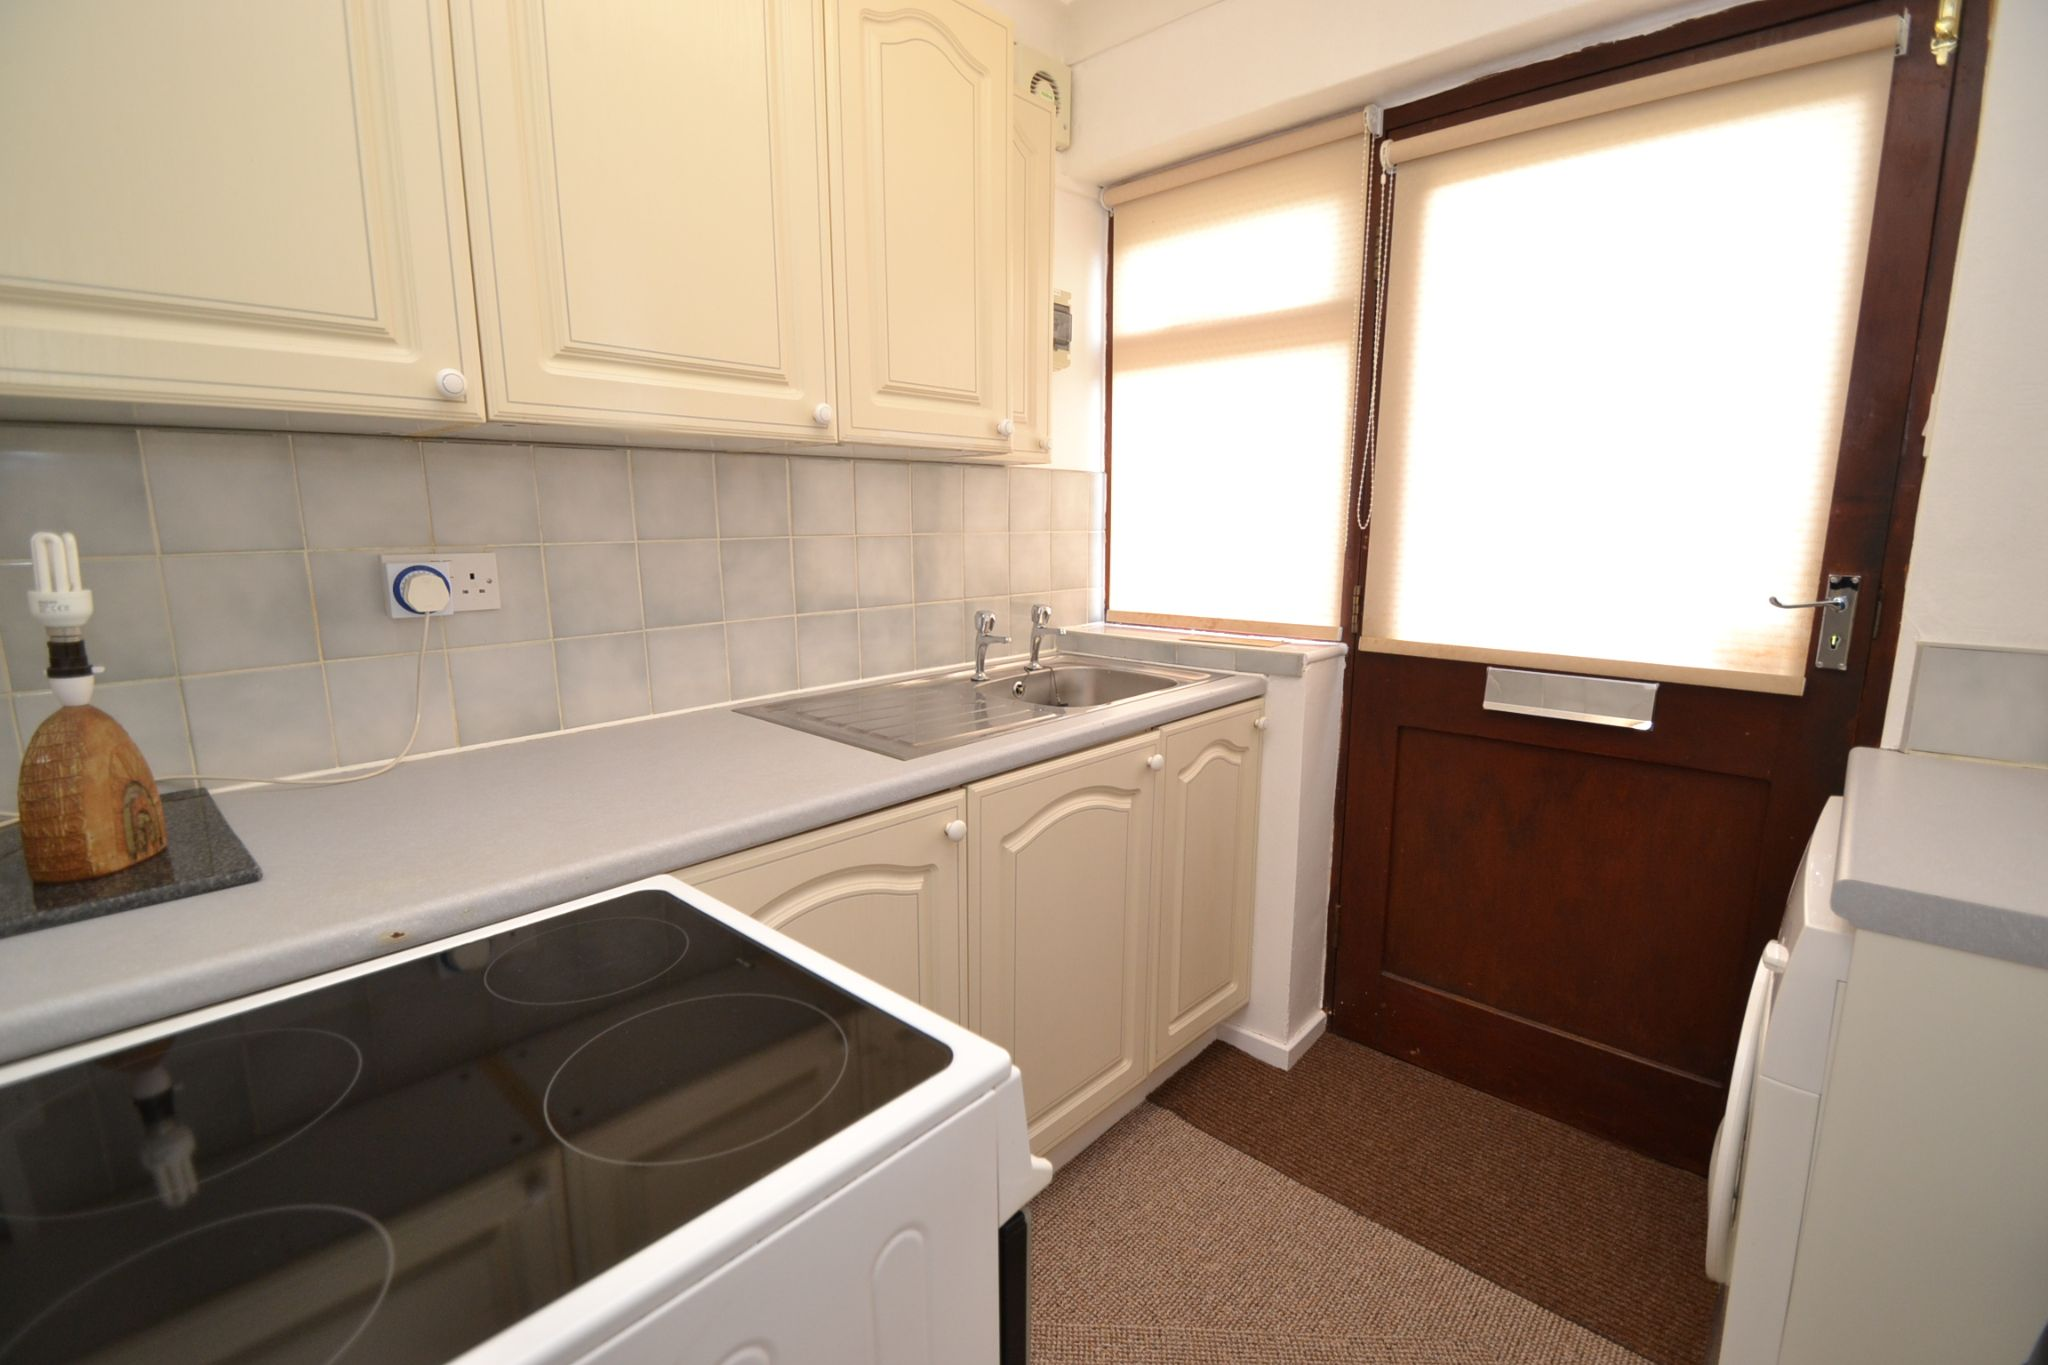 2 Bedroom Ground Floor Flat/apartment For Sale - Photograph 3